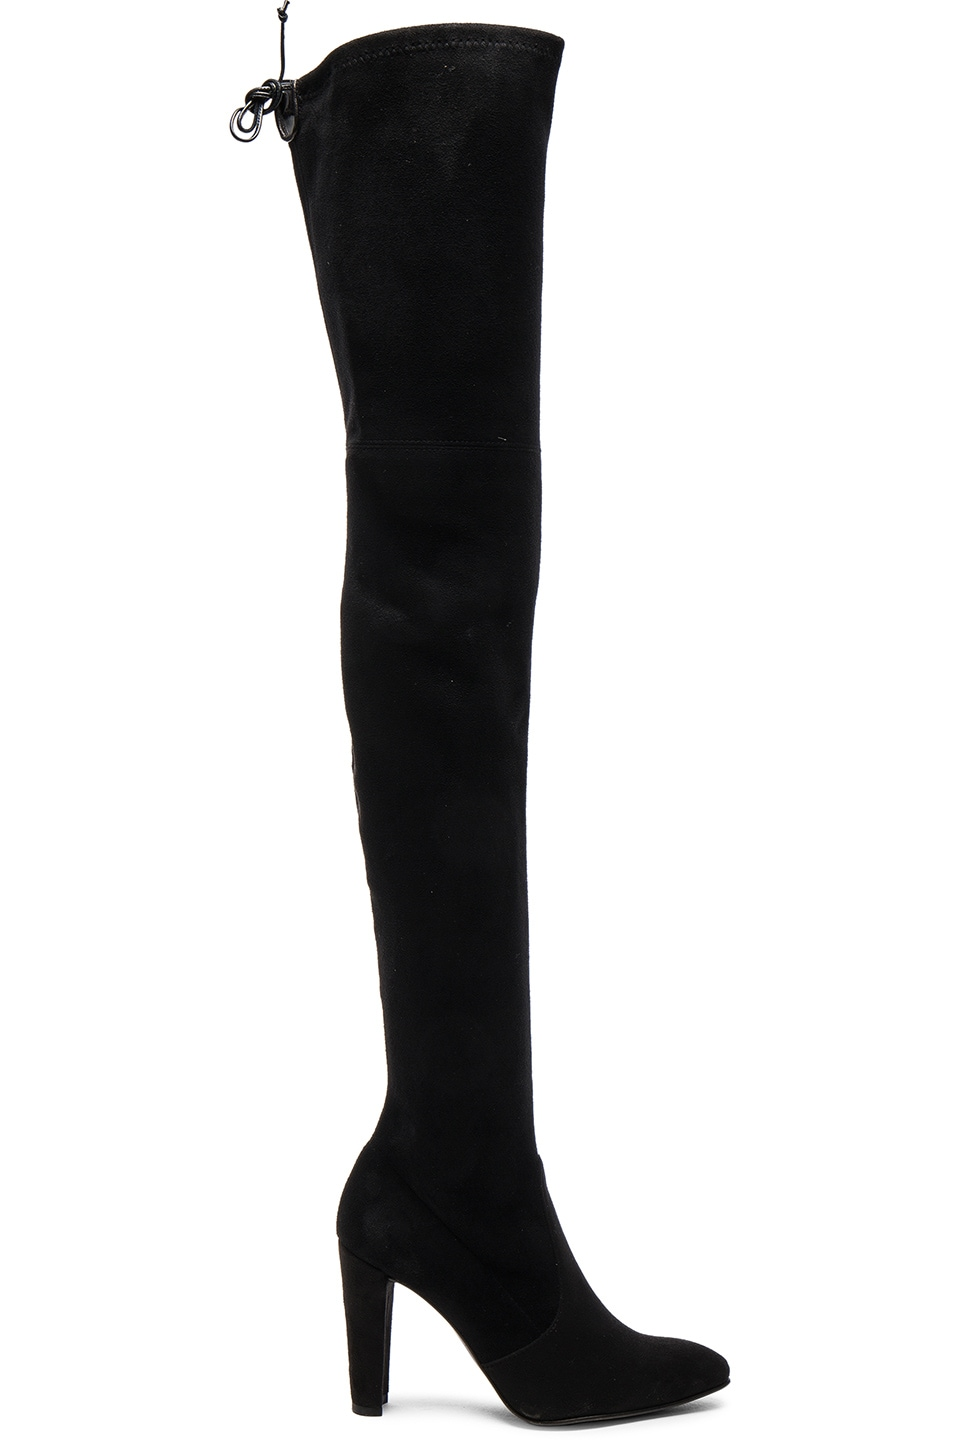 Image 1 of Stuart Weitzman Suede Alllegs Boots in Black